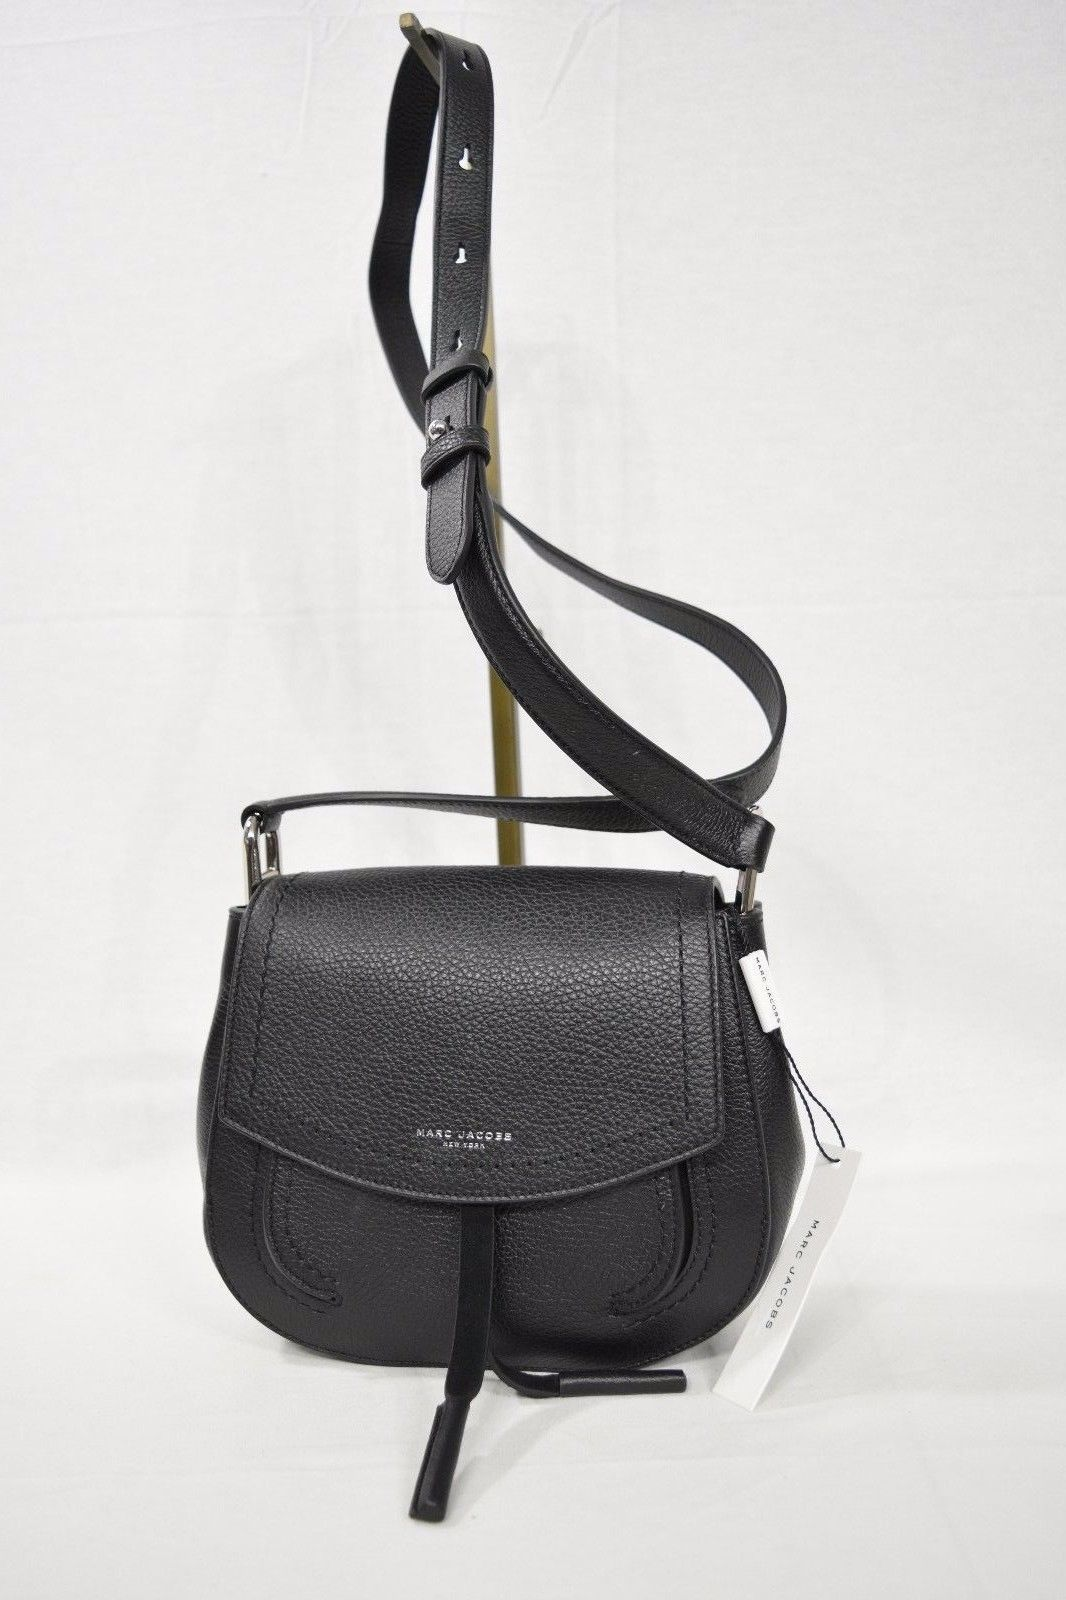 Marc Jacobs M0009544 Maverick Mini Saddle Shoulder Crossbody Leather Bag  Black 01208fd48a44e